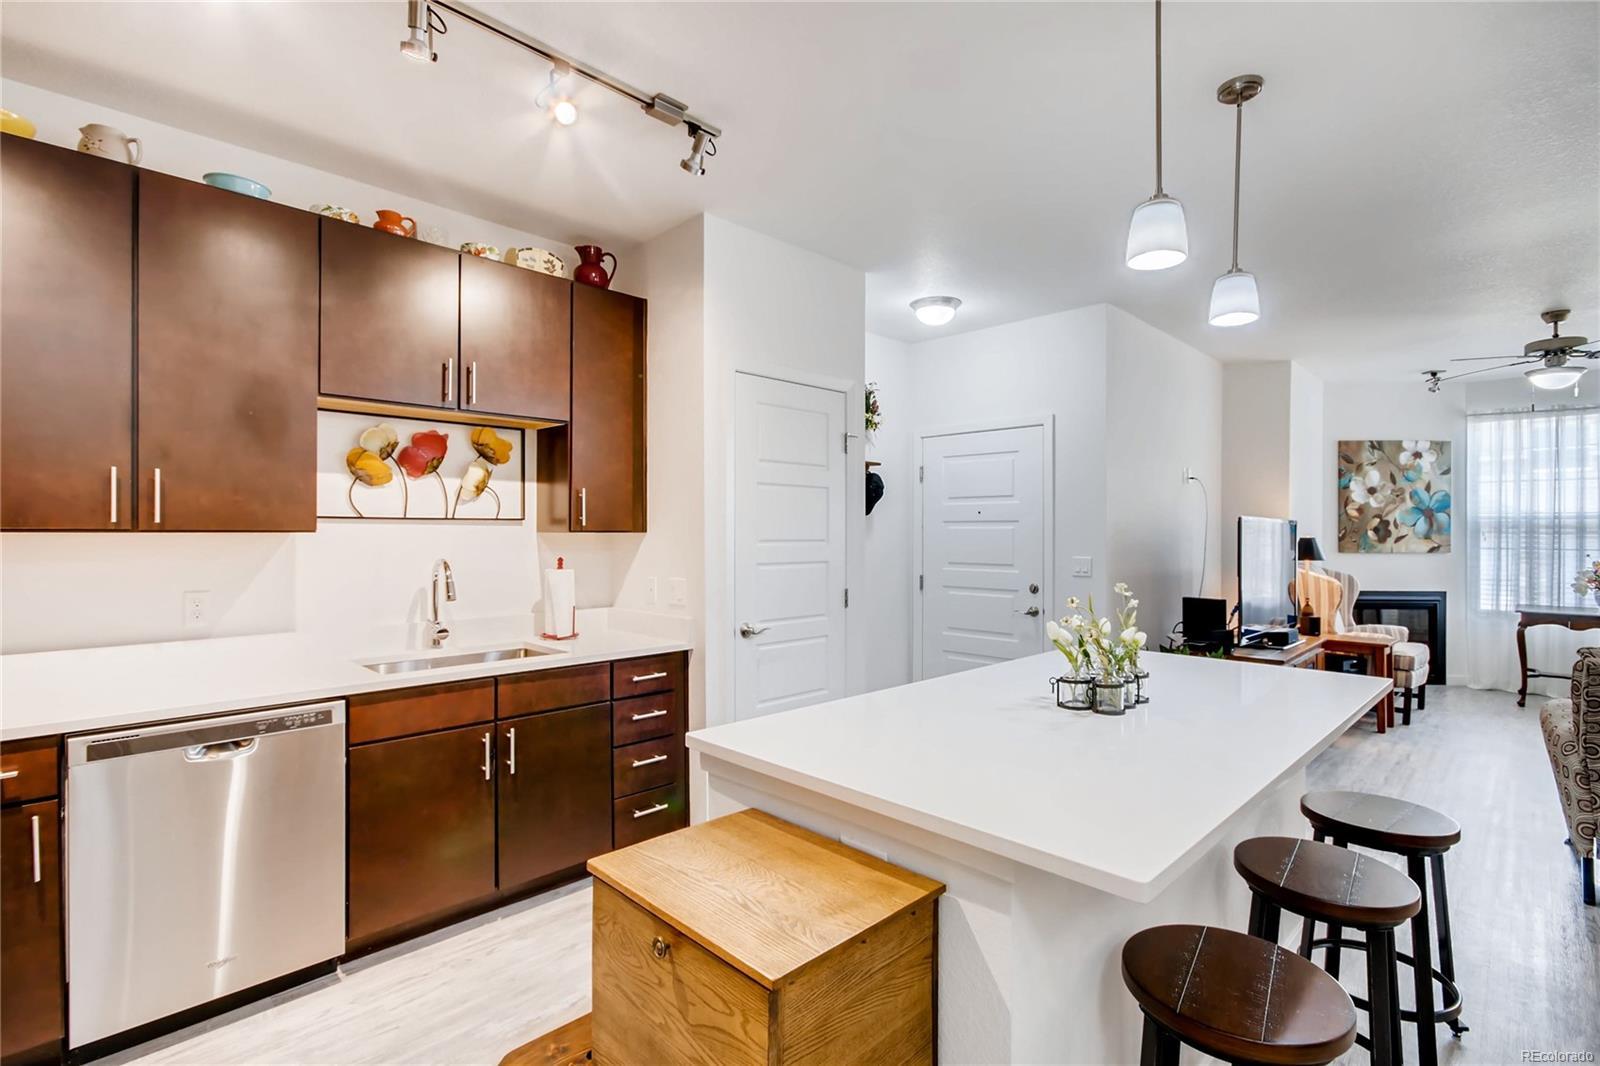 BEAUTIFUL OPEN MODERN ,KITCHEN WITH STAINLESS STEEL APPLIANCES AND SLAB GRANITE COUNTERS AND ISLAND